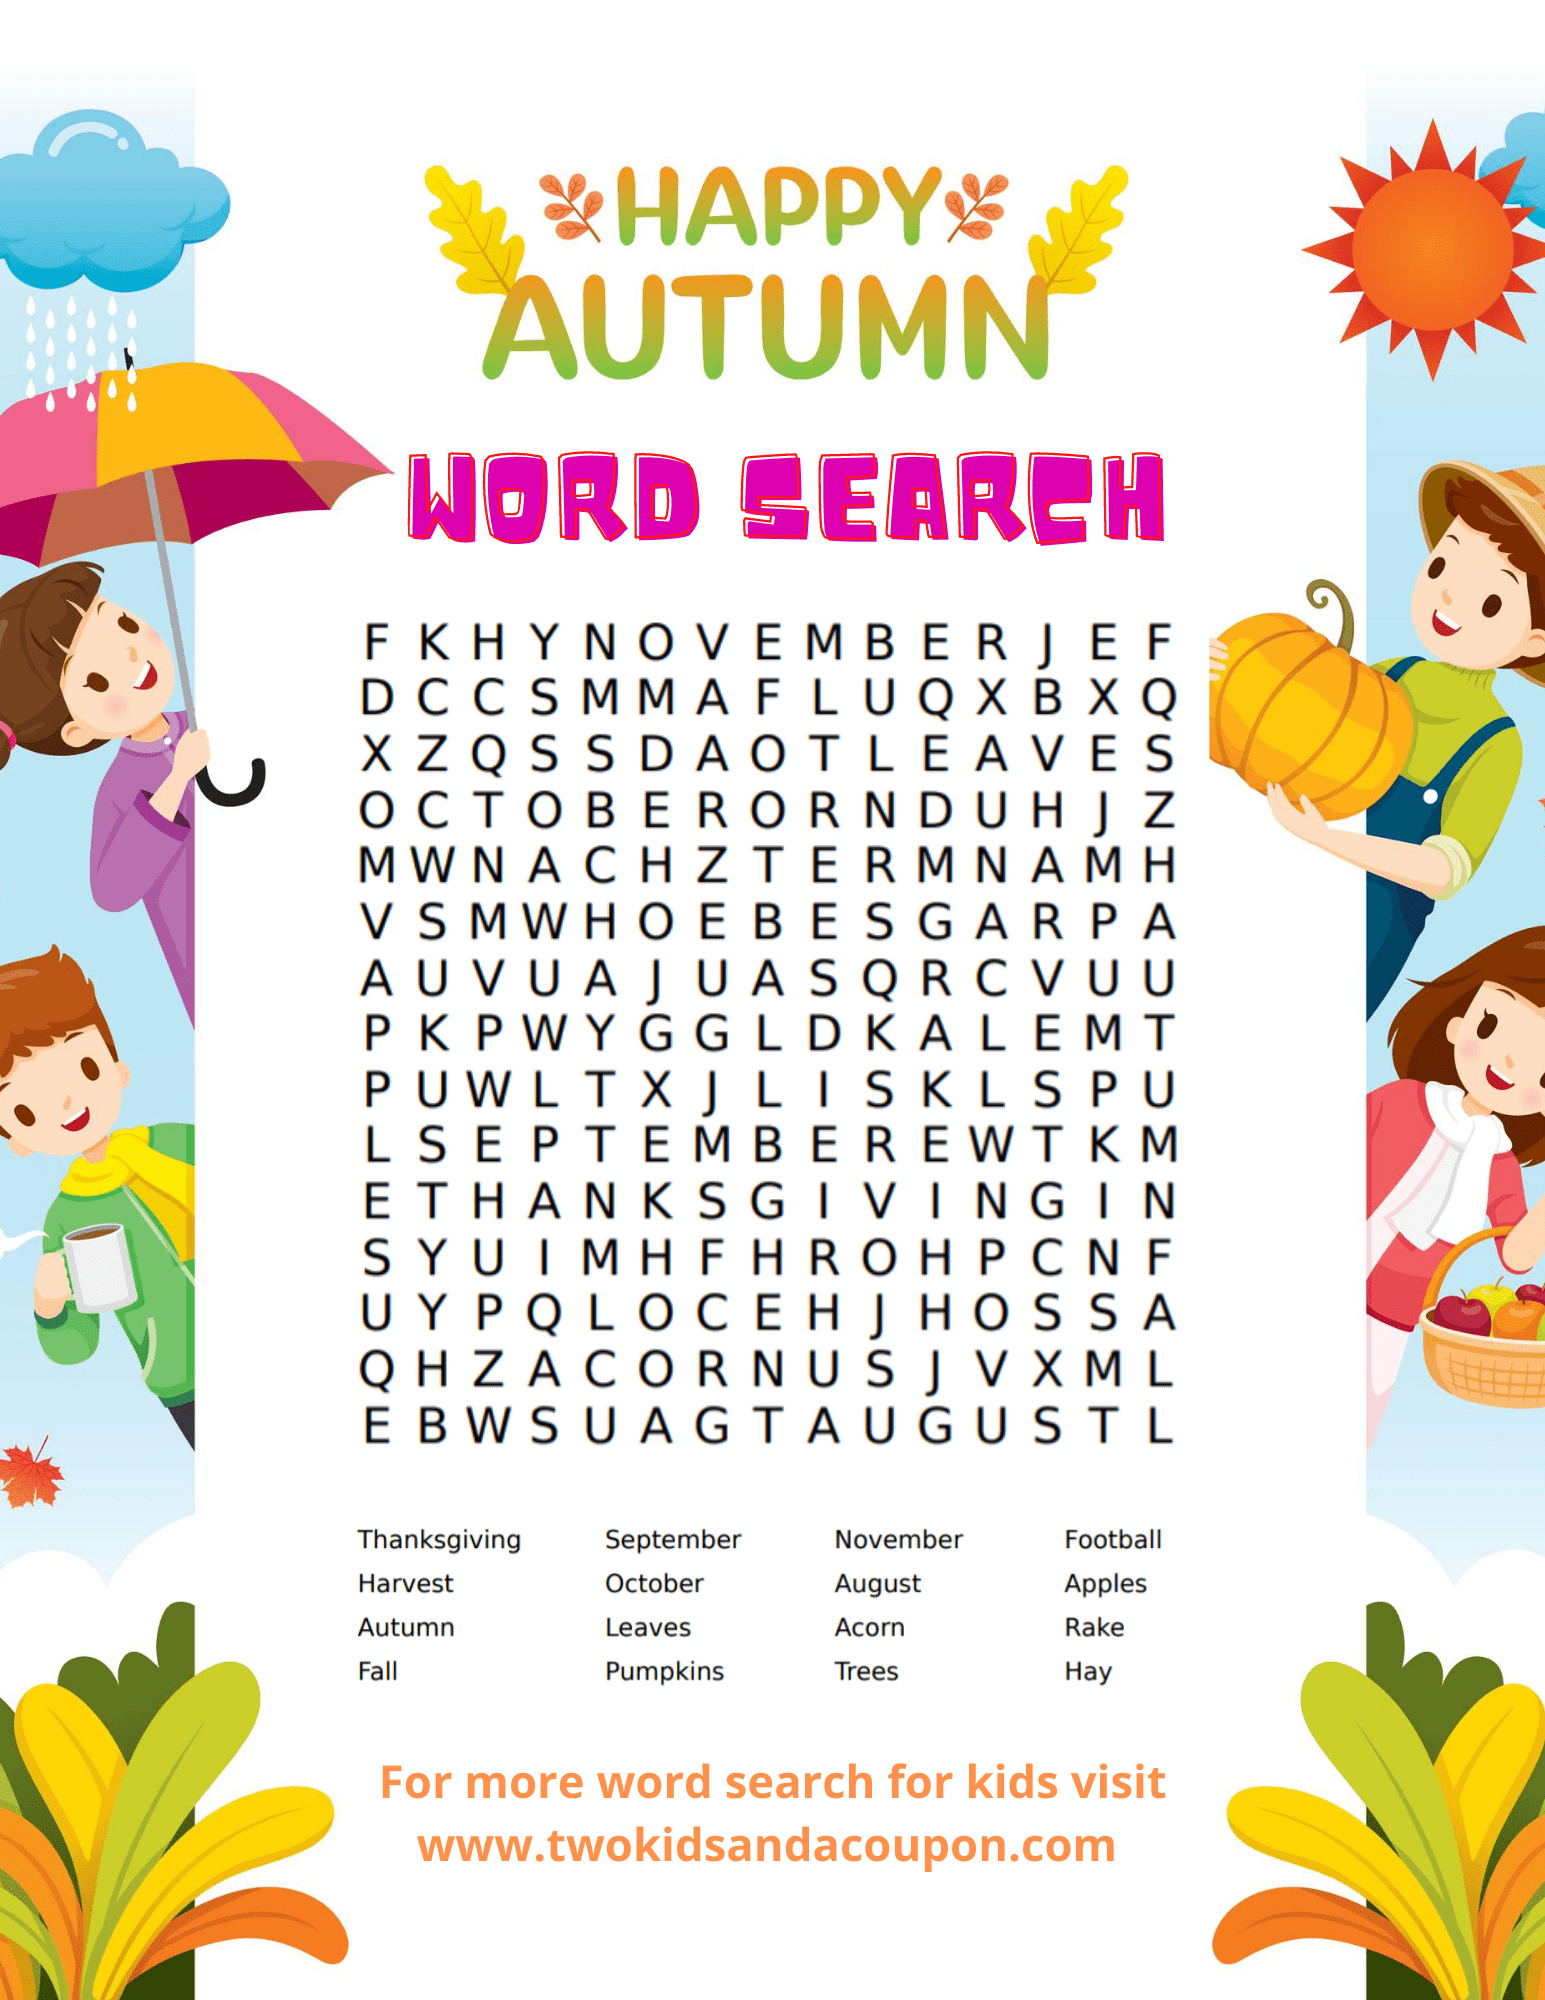 Free Kids Word Search Puzzles Printable For Fall For Your Family